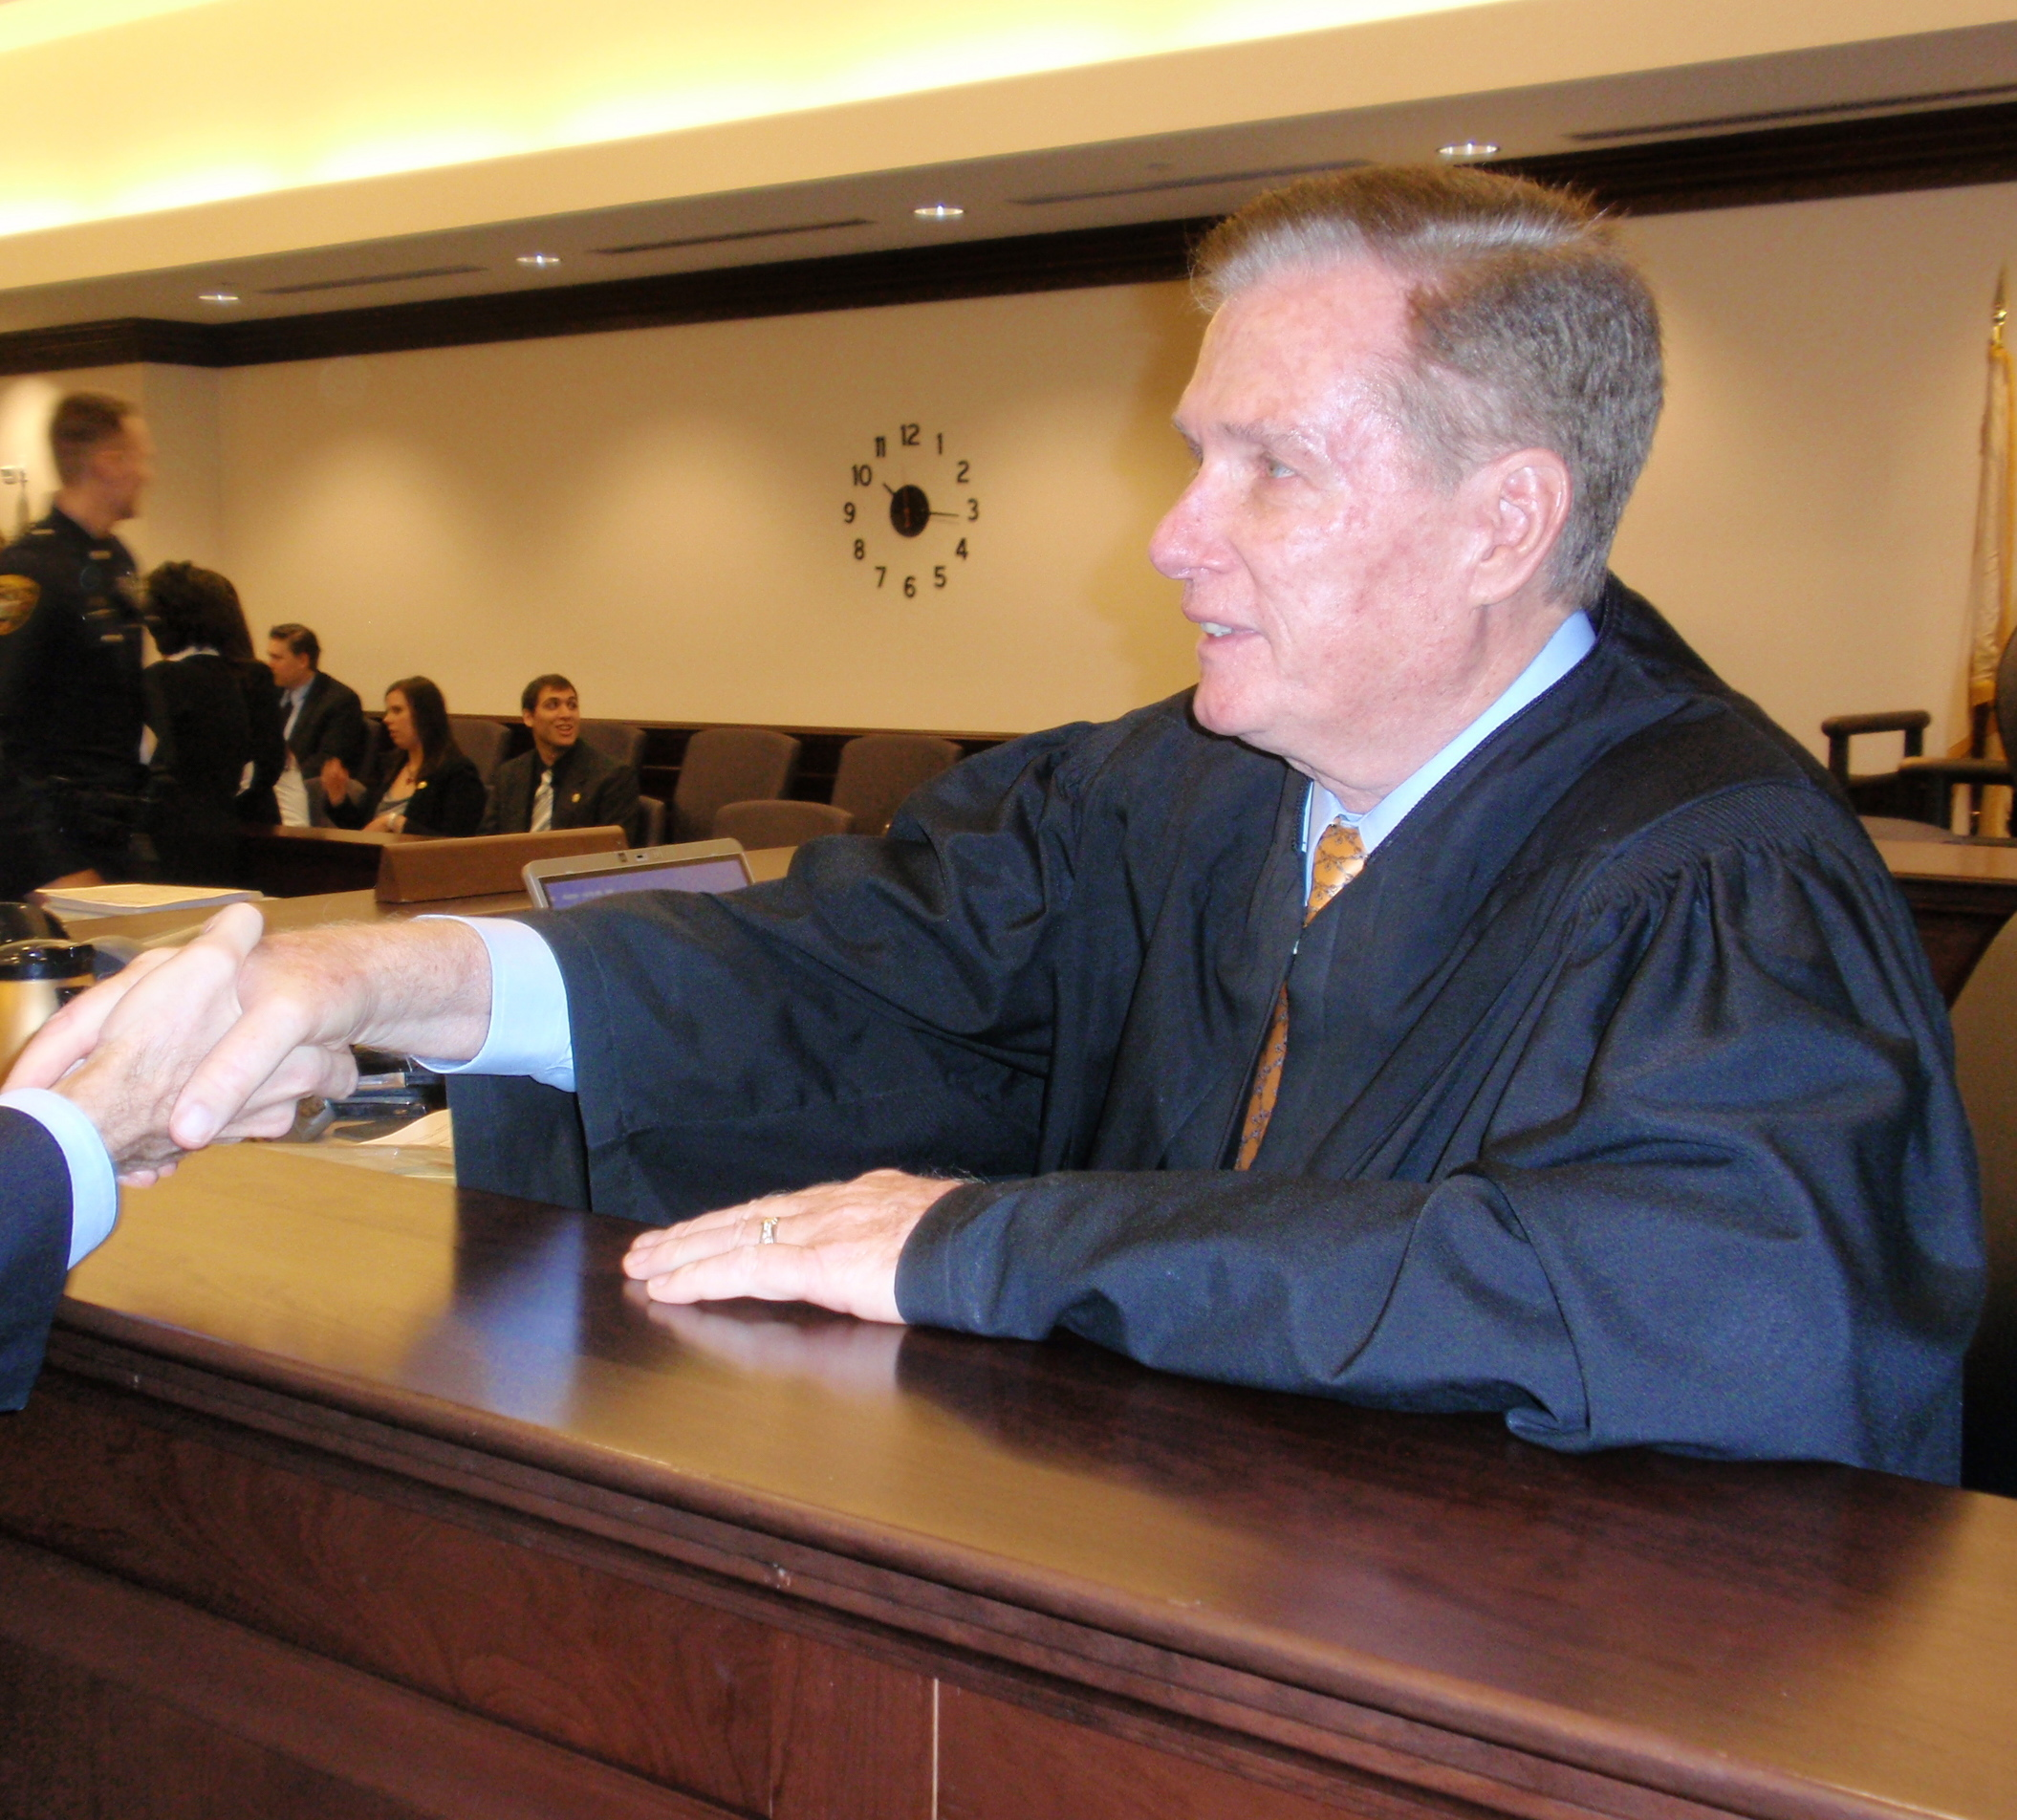 Retiring Judge Howard F. Riley Jr. shakes the hands of well-wishers after his surprise tribute.